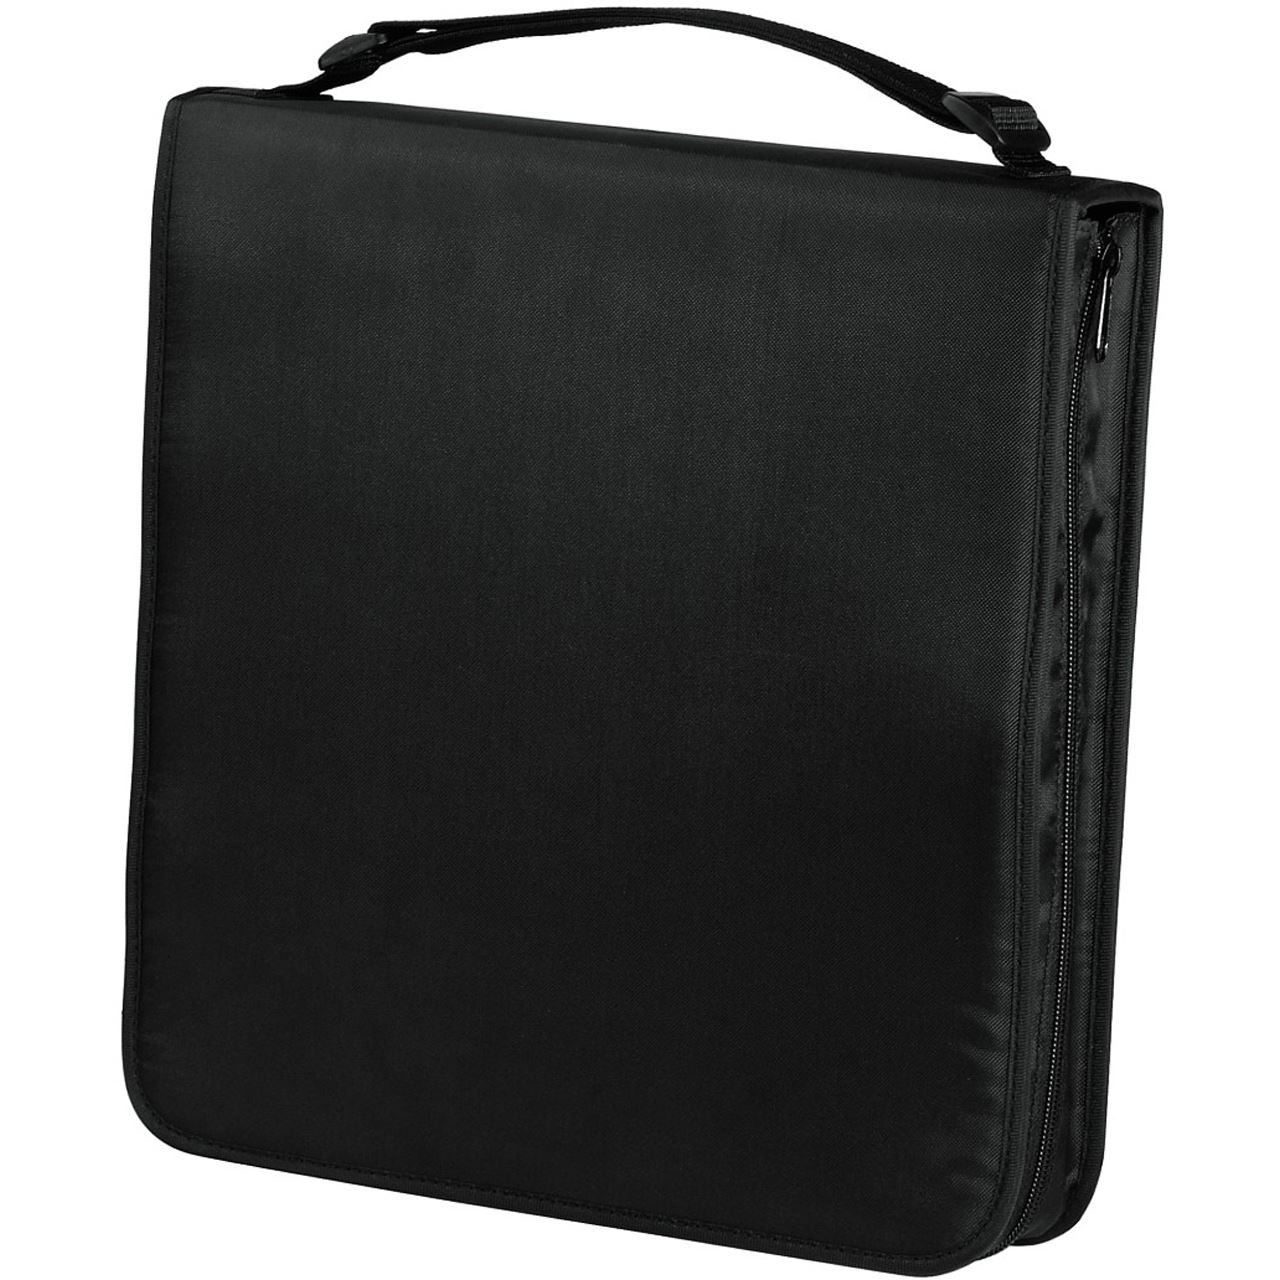 hama cd dvd blu ray tasche 160 schwarz tasche f r. Black Bedroom Furniture Sets. Home Design Ideas